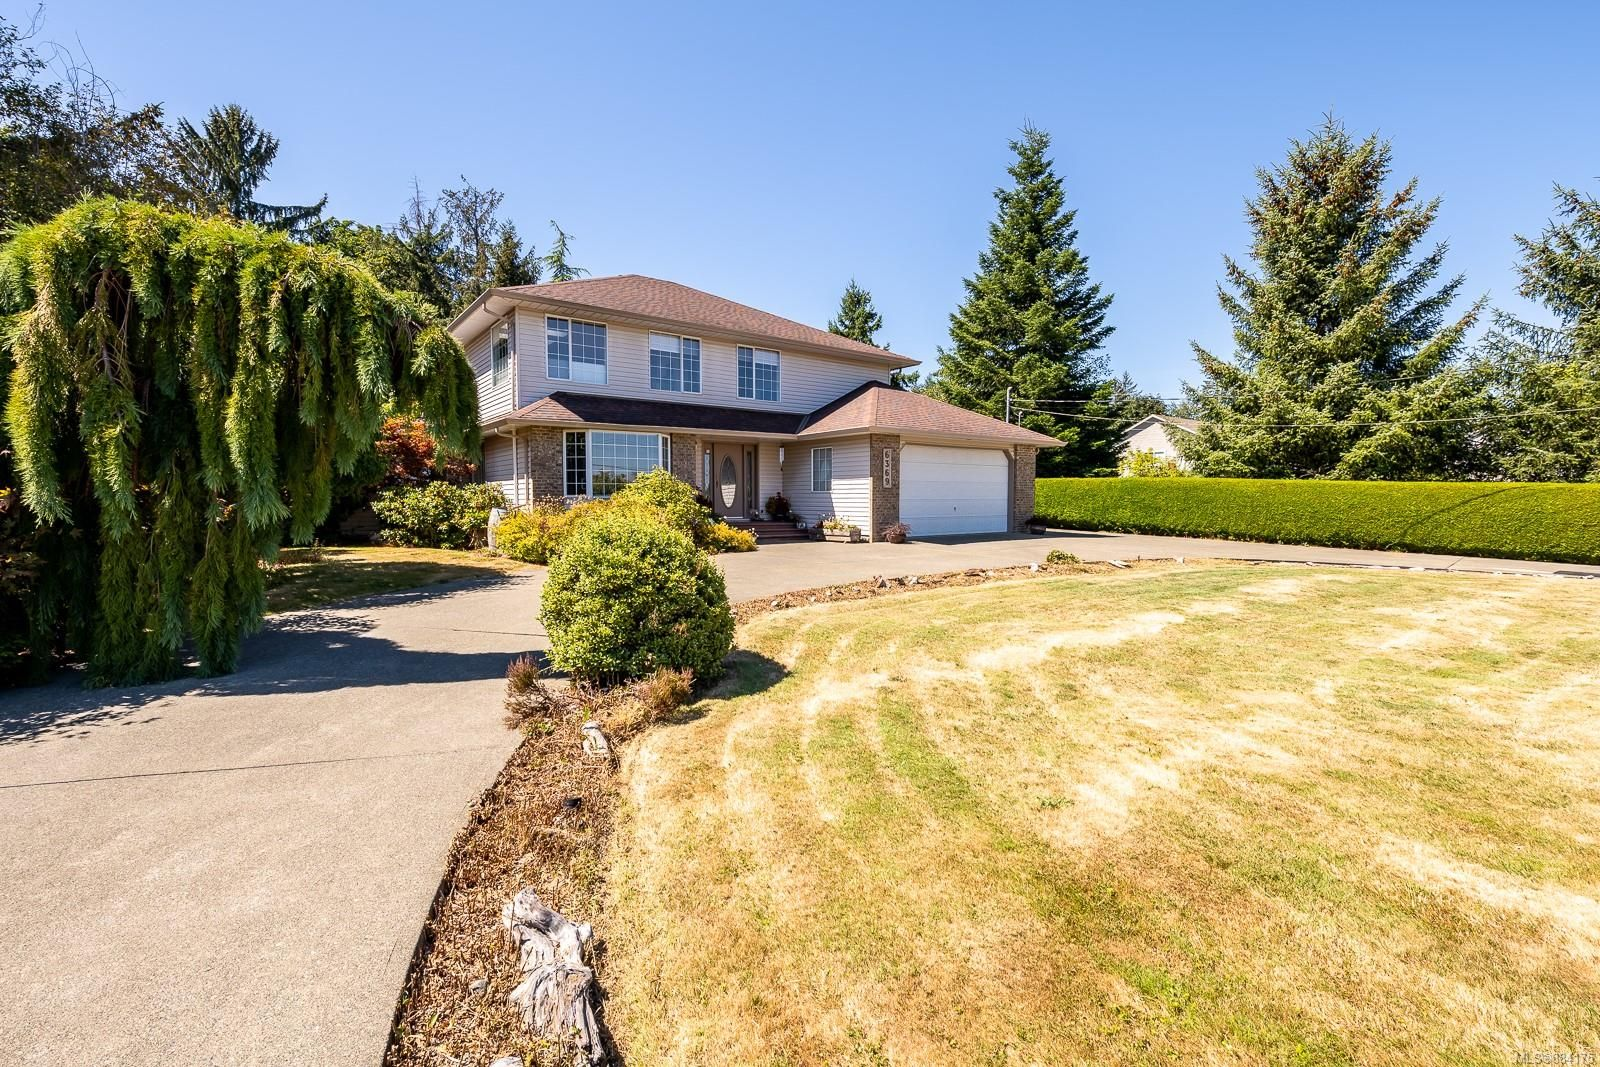 Main Photo: 6369 Eagles Dr in : CV Courtenay North House for sale (Comox Valley)  : MLS®# 884175